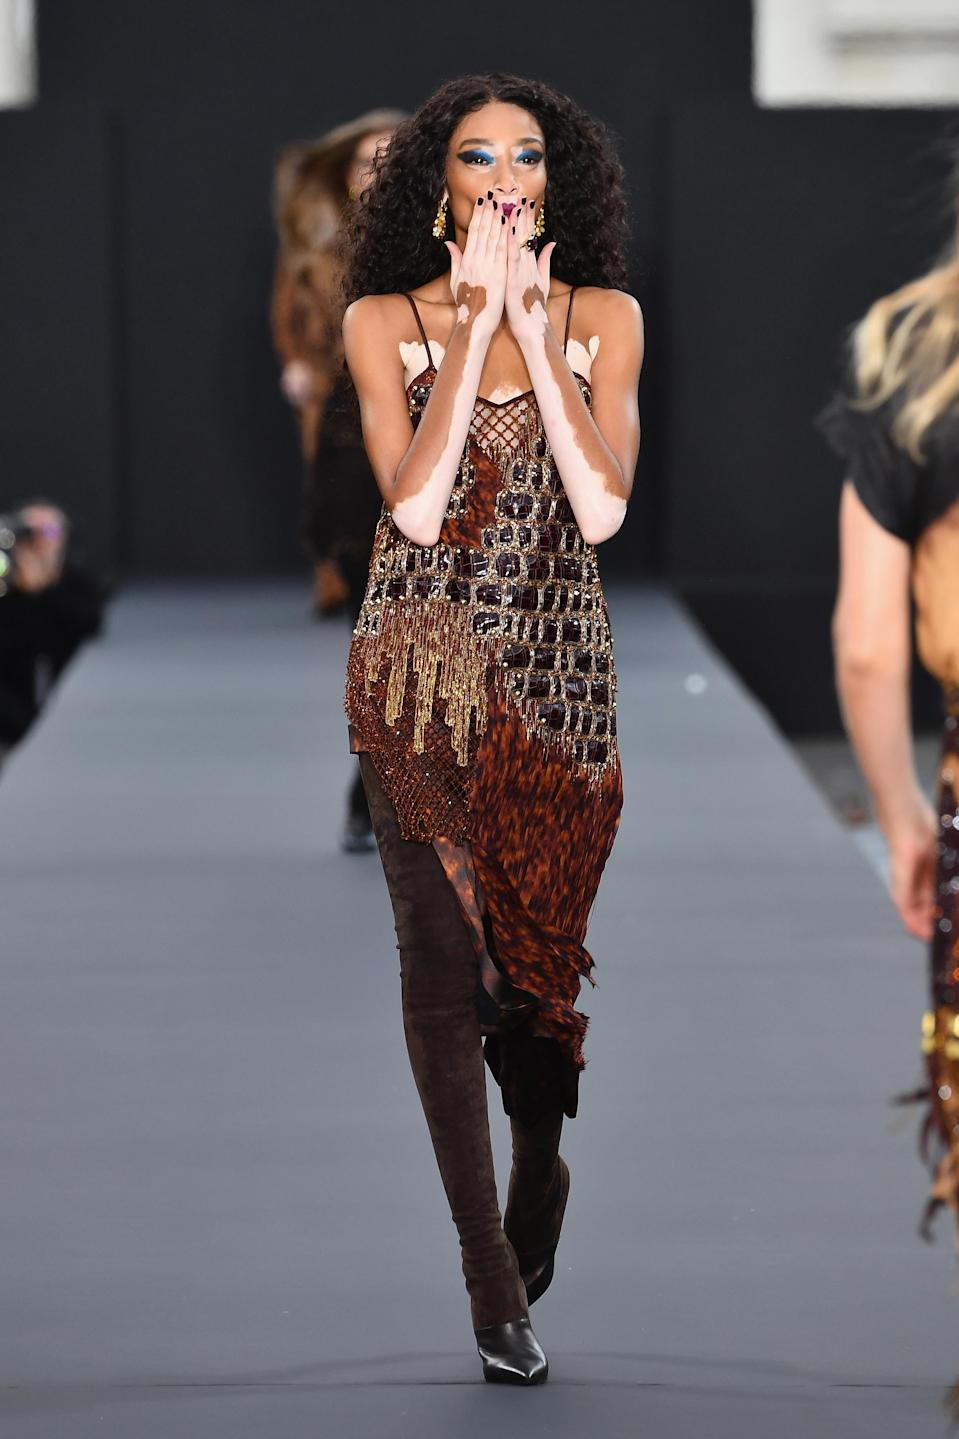 <p>L'Oreal proved its commitment to diversity by casting vitiligo model Winnie Harlow. <i>[Photo: Getty]</i> </p>